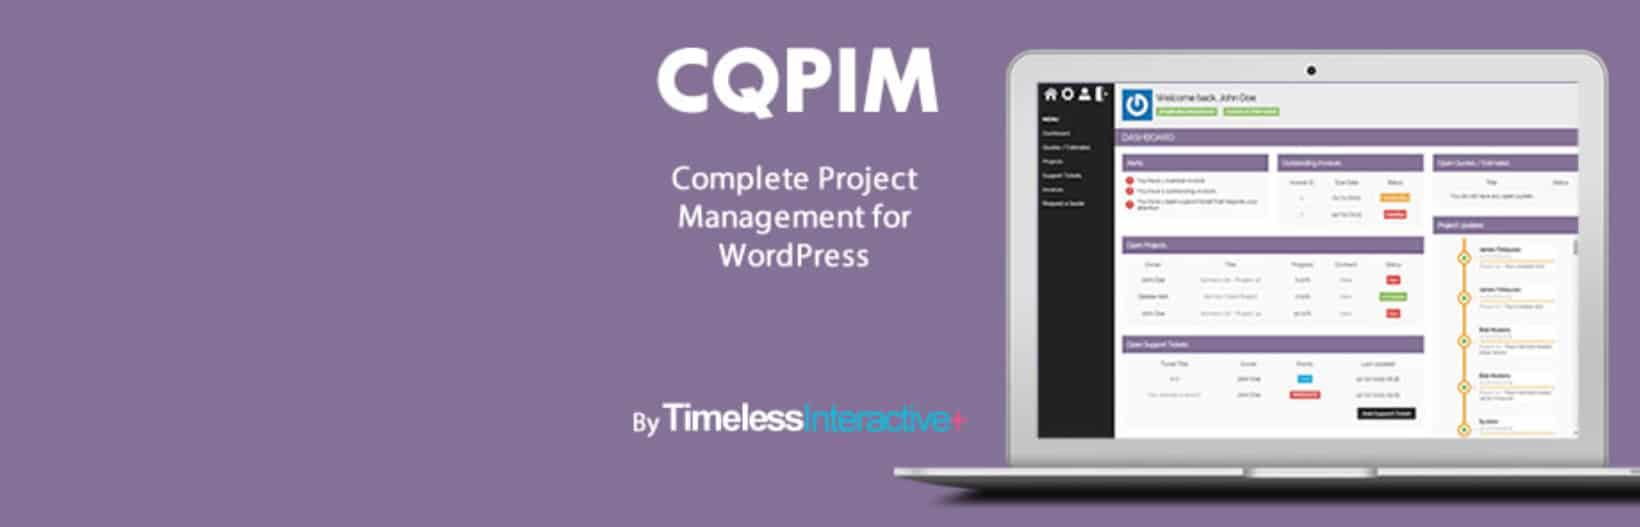 cqpim project management for wordpress